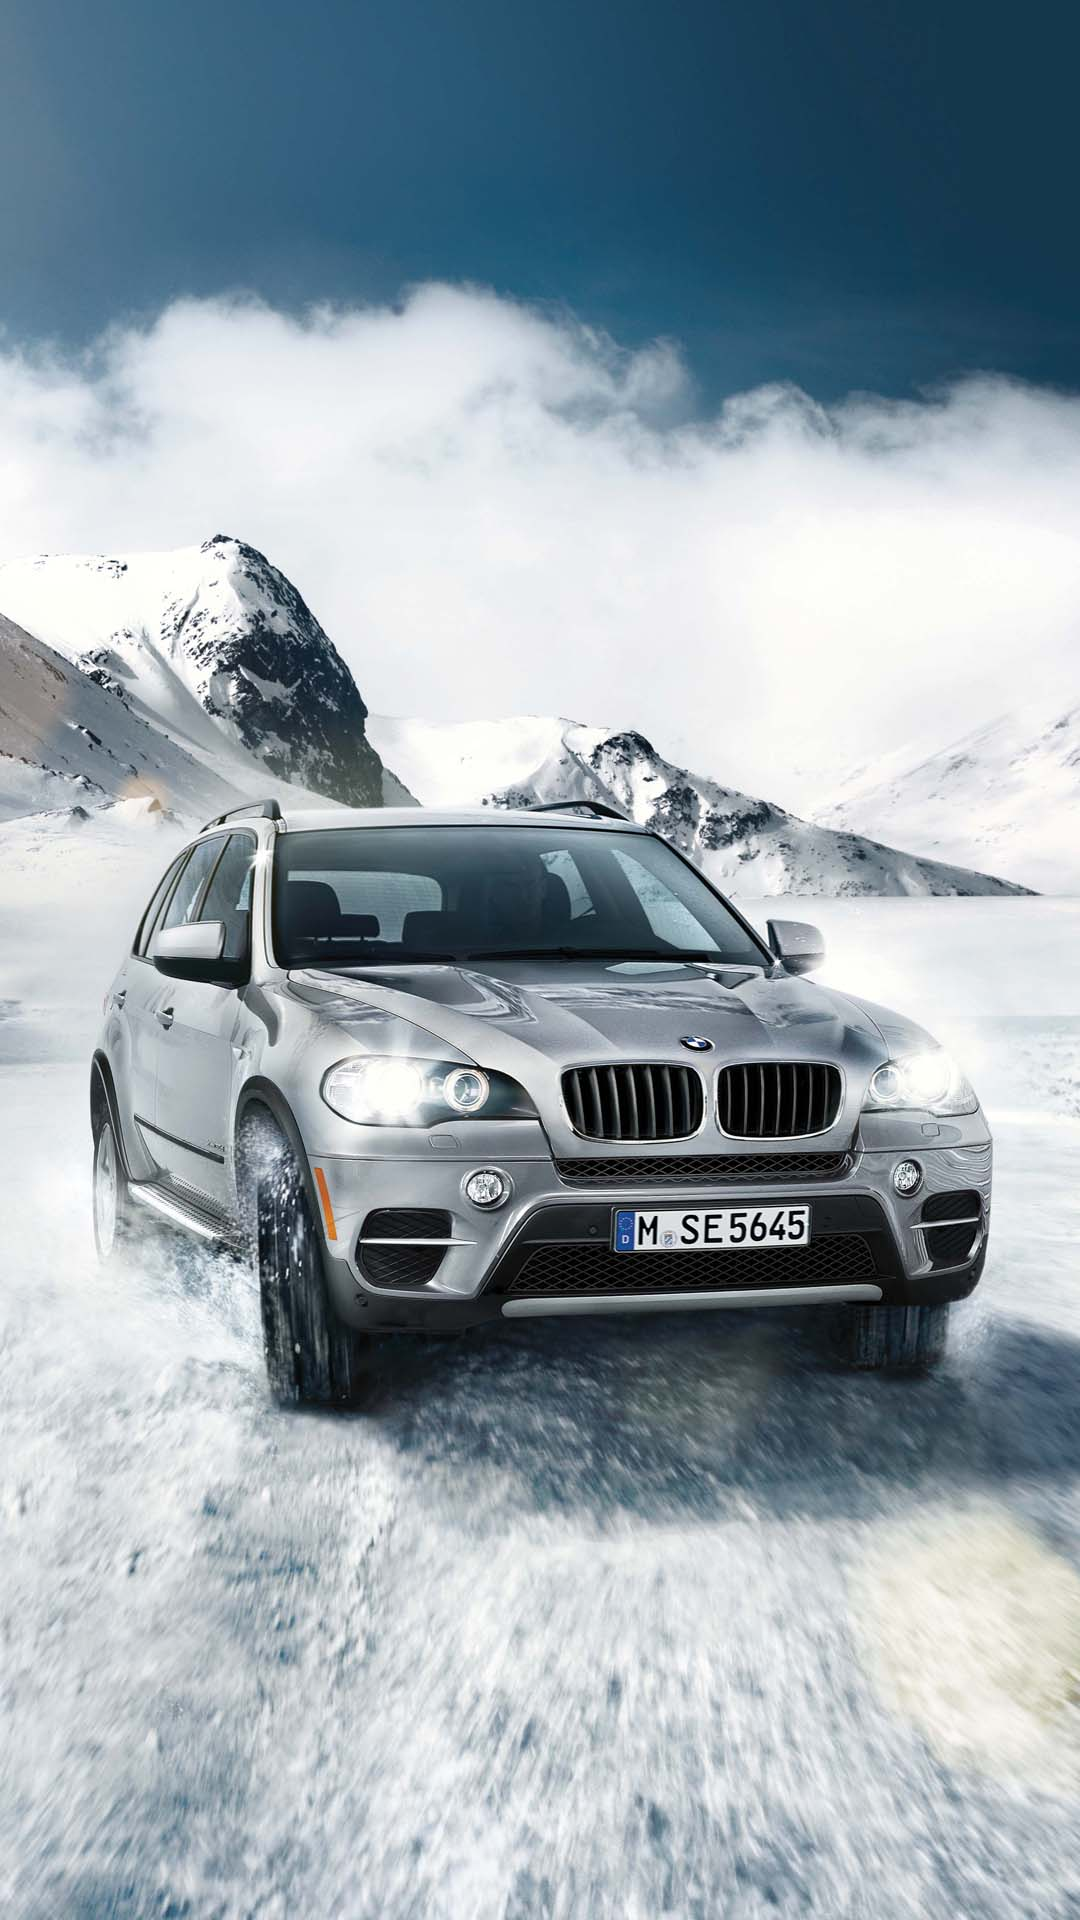 BMW X5 htc one wallpaper